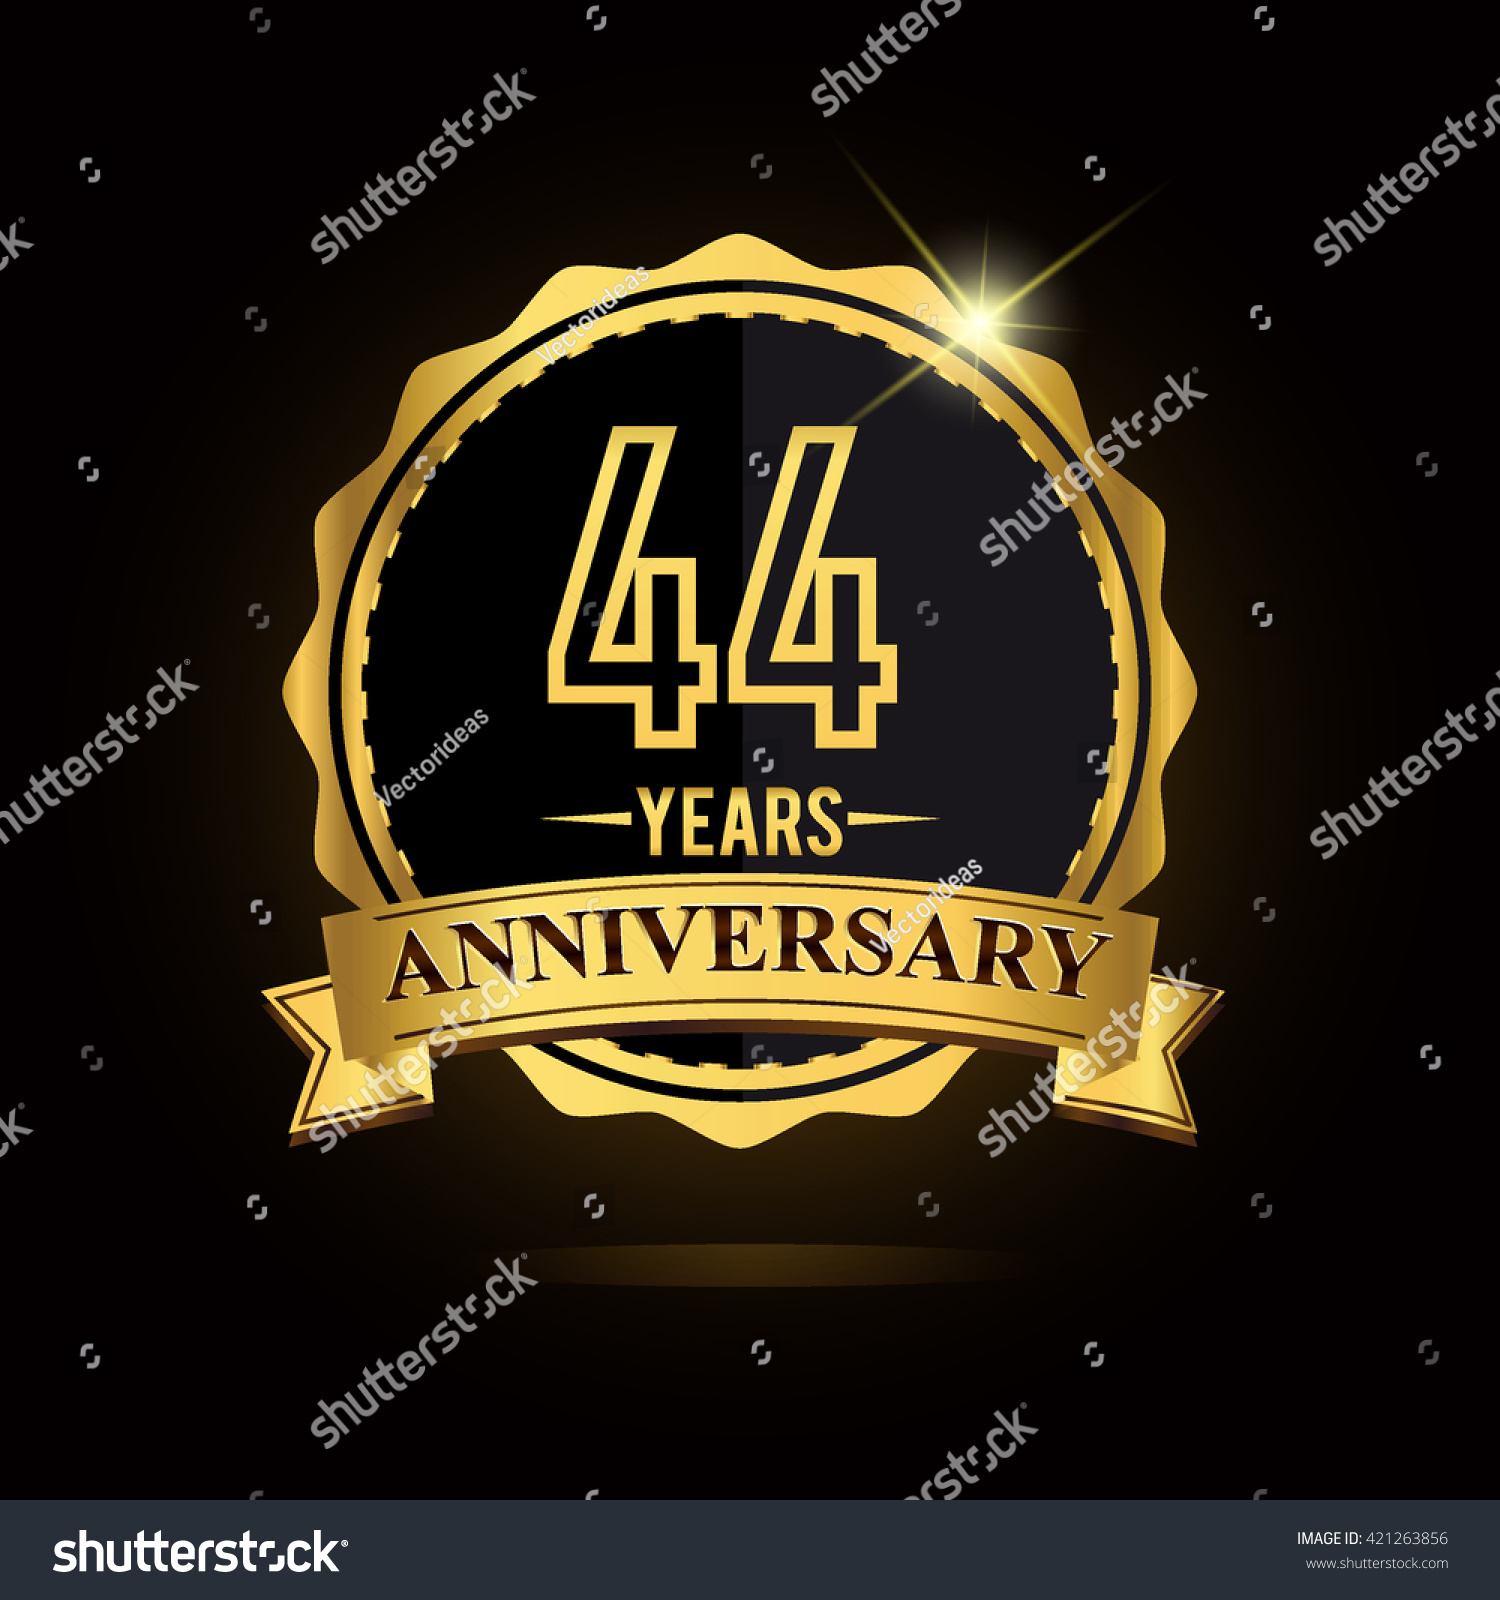 Vector emblem 44th anniversary logo ribbon stock vector 421263856 vector emblem 44th anniversary logo with ribbon golden colored and shiny badge biocorpaavc Gallery